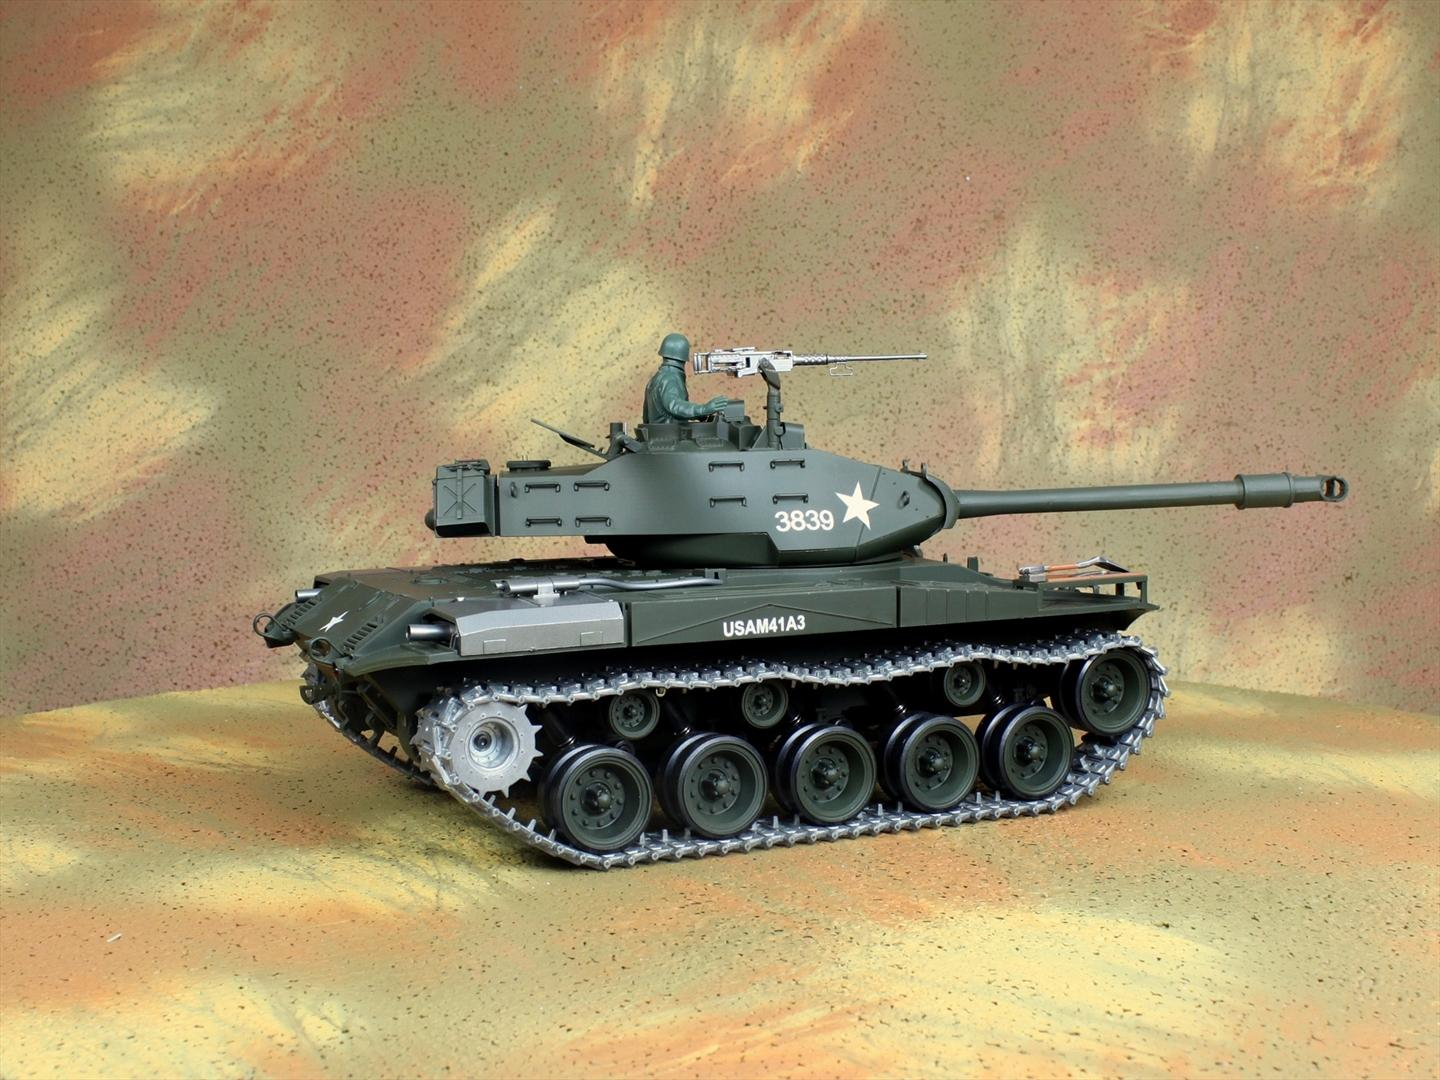 HENG-LONG Toys 3839 RC Scale Model Tank, WWII US M41A3 Walker Bulldog Remote Control Tank.